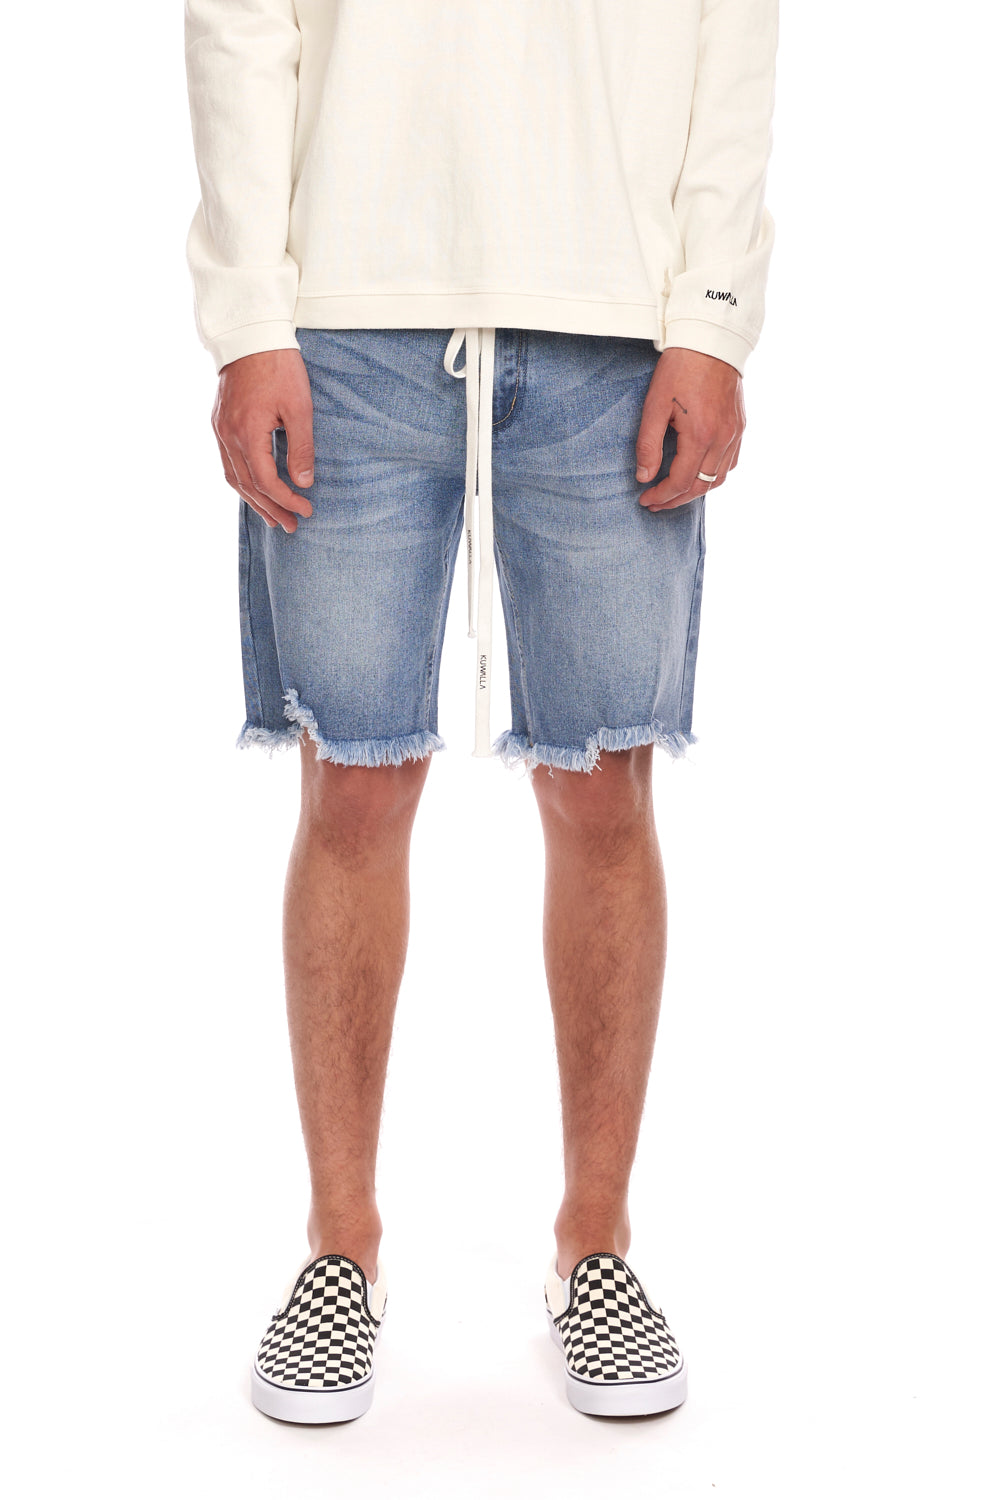 Kuwalla Tee - Kamikaze Denim Short 2.0